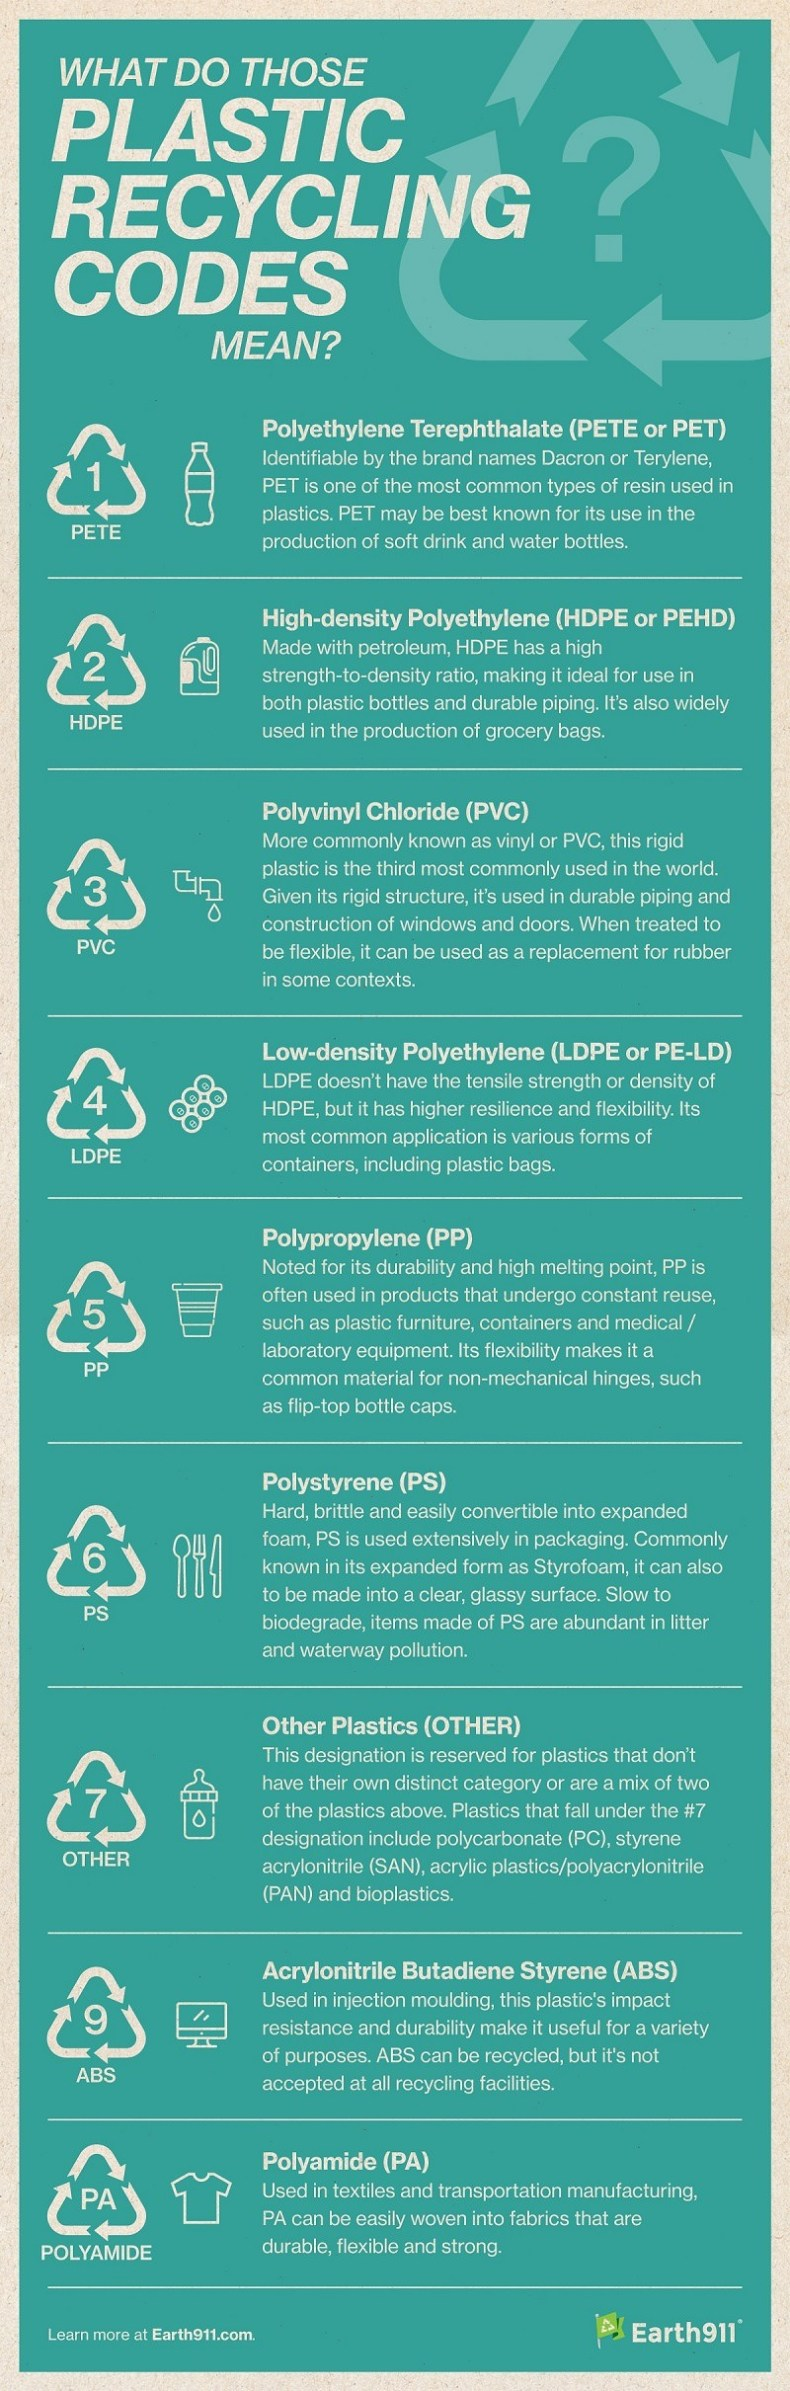 list of plastic recycling codes and symbols with short descriptions